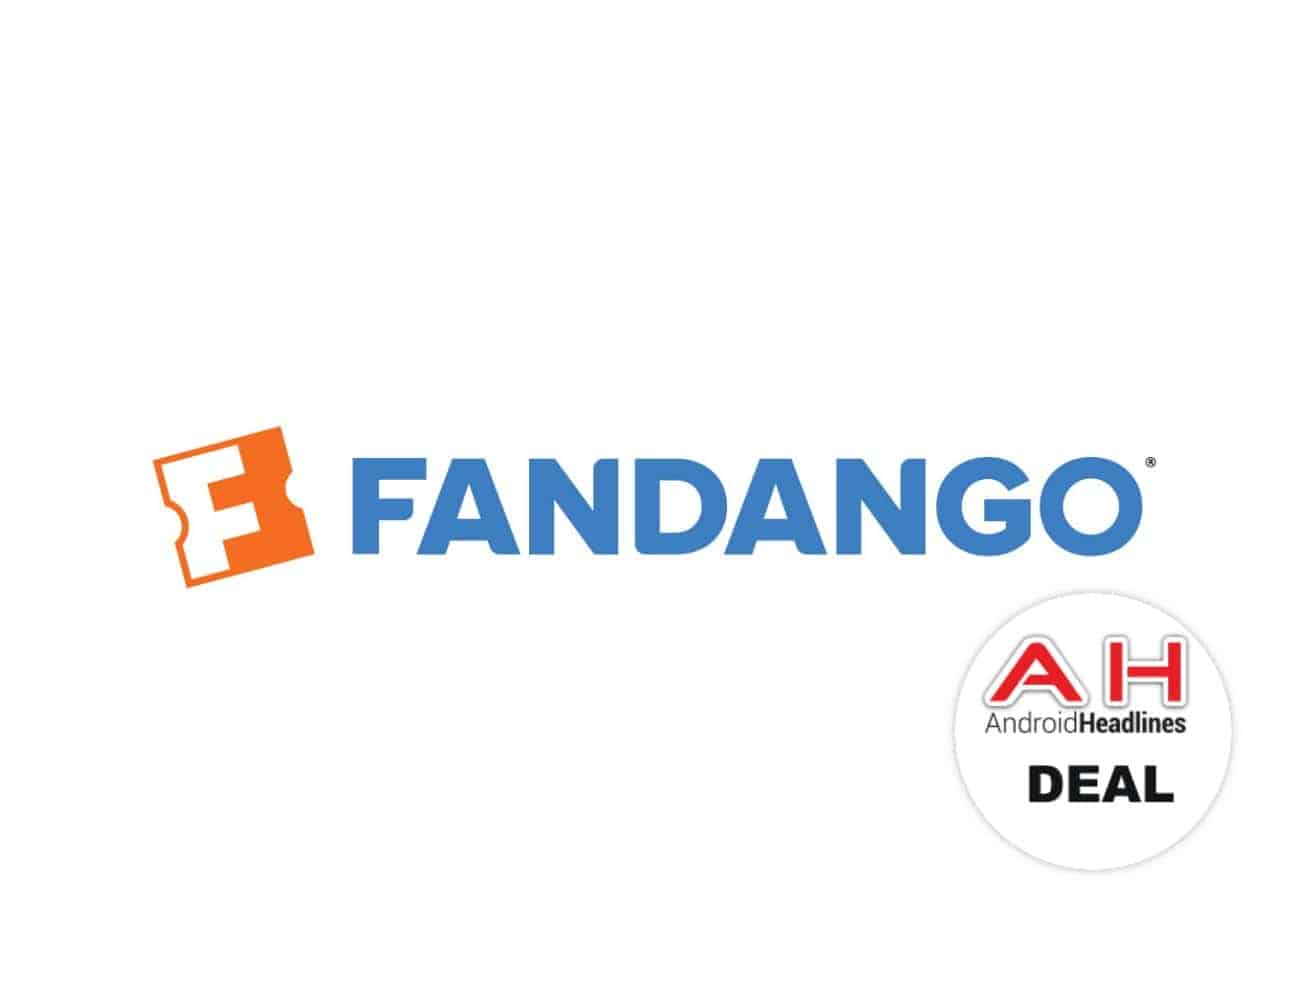 Free fandango app for android